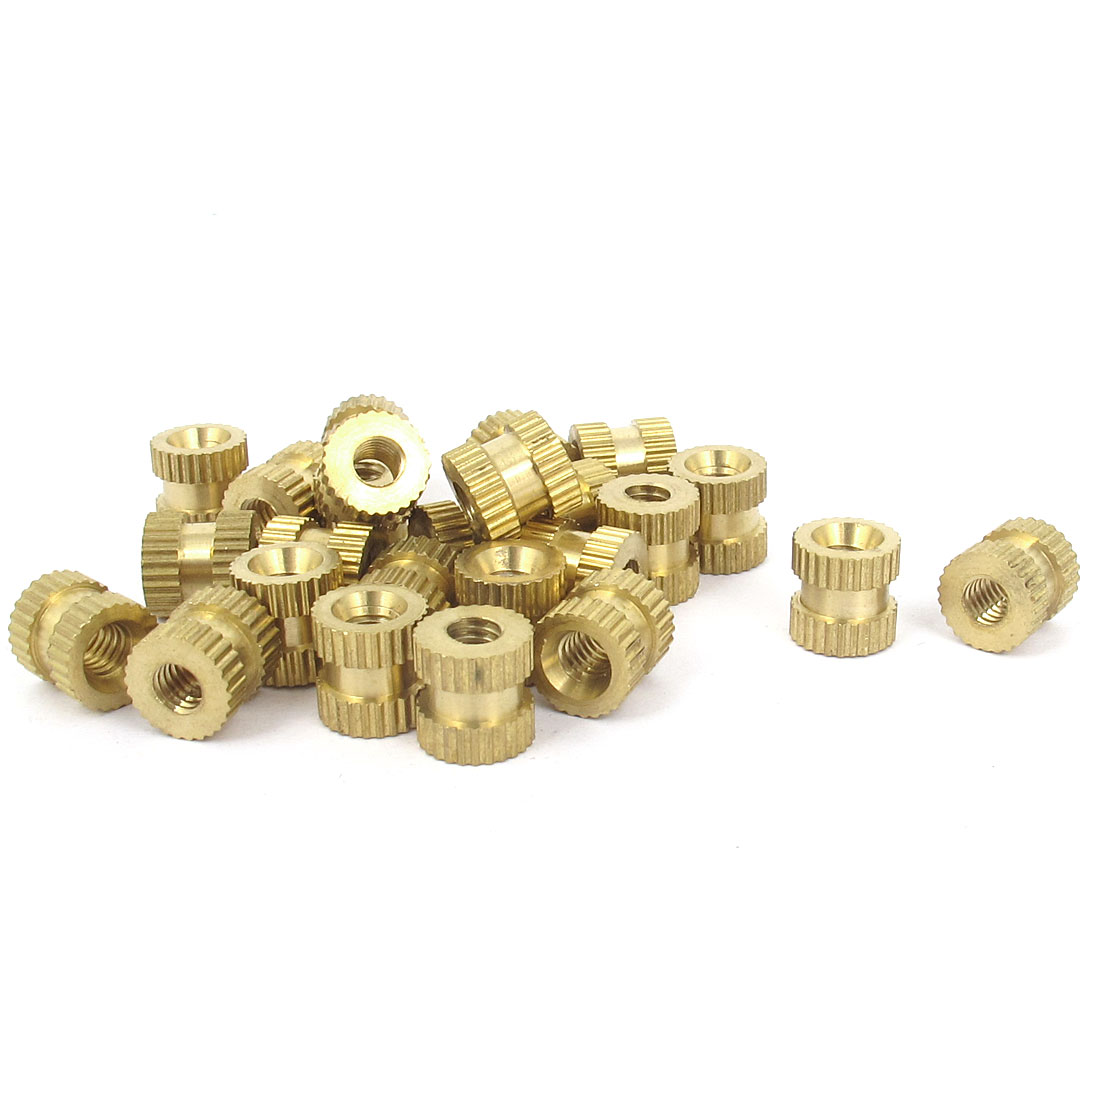 25 Pcs #8-32x8mm(L)x8mm(OD) Metric Threaded Brass Knurl Round Insert Nuts